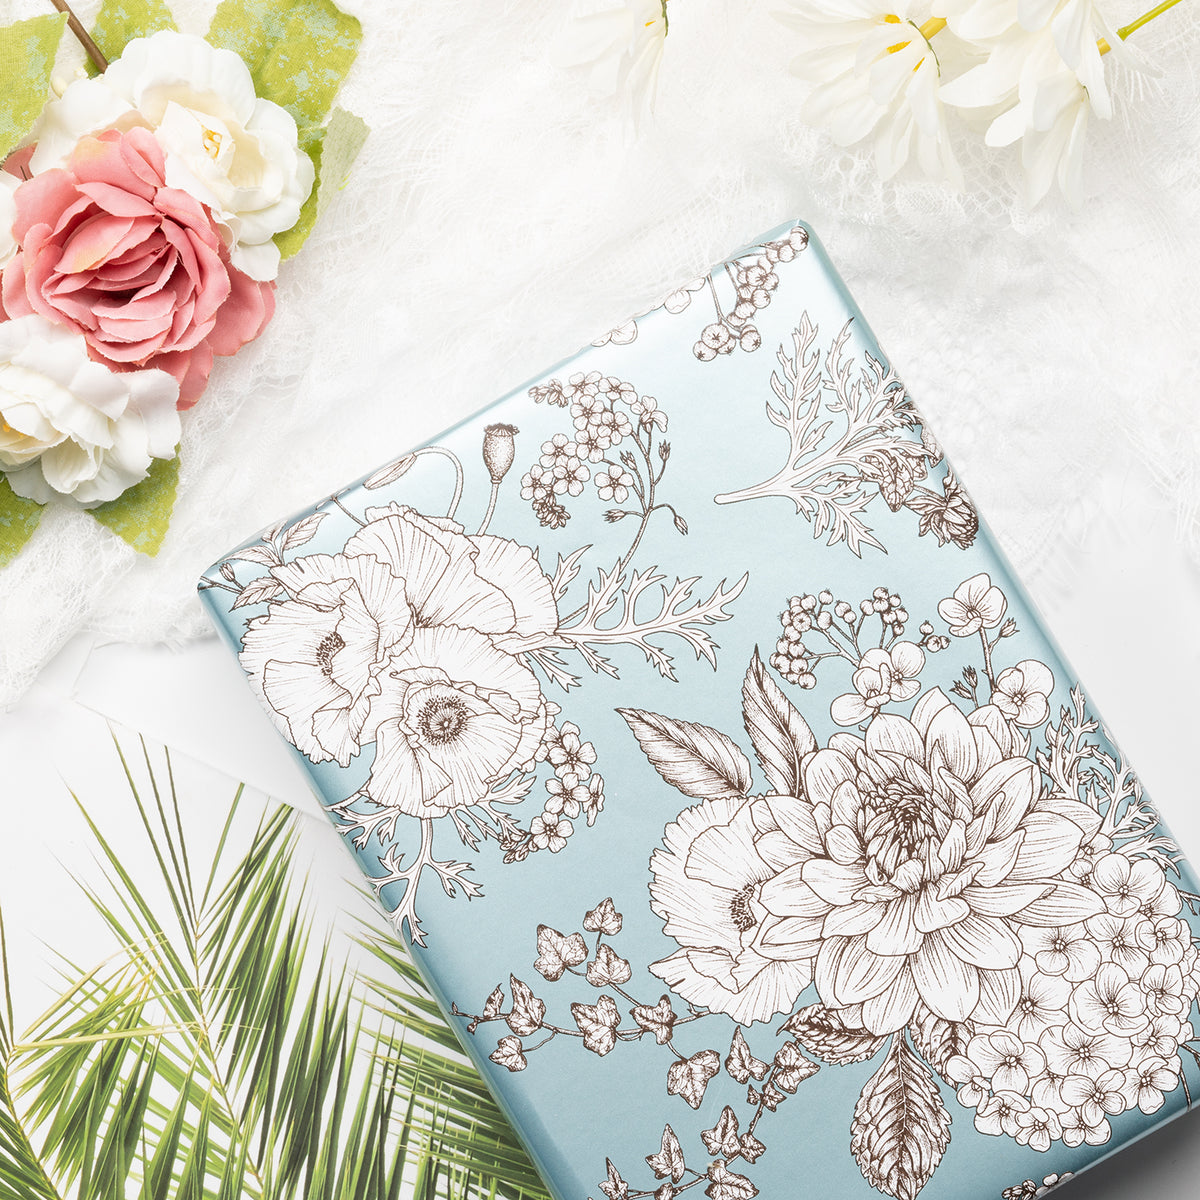 Wrapaholic-Vintage-Floral- Printed-on-Blue Pearlized-Pape-Gift-Wrapping-Paper-Roll-4